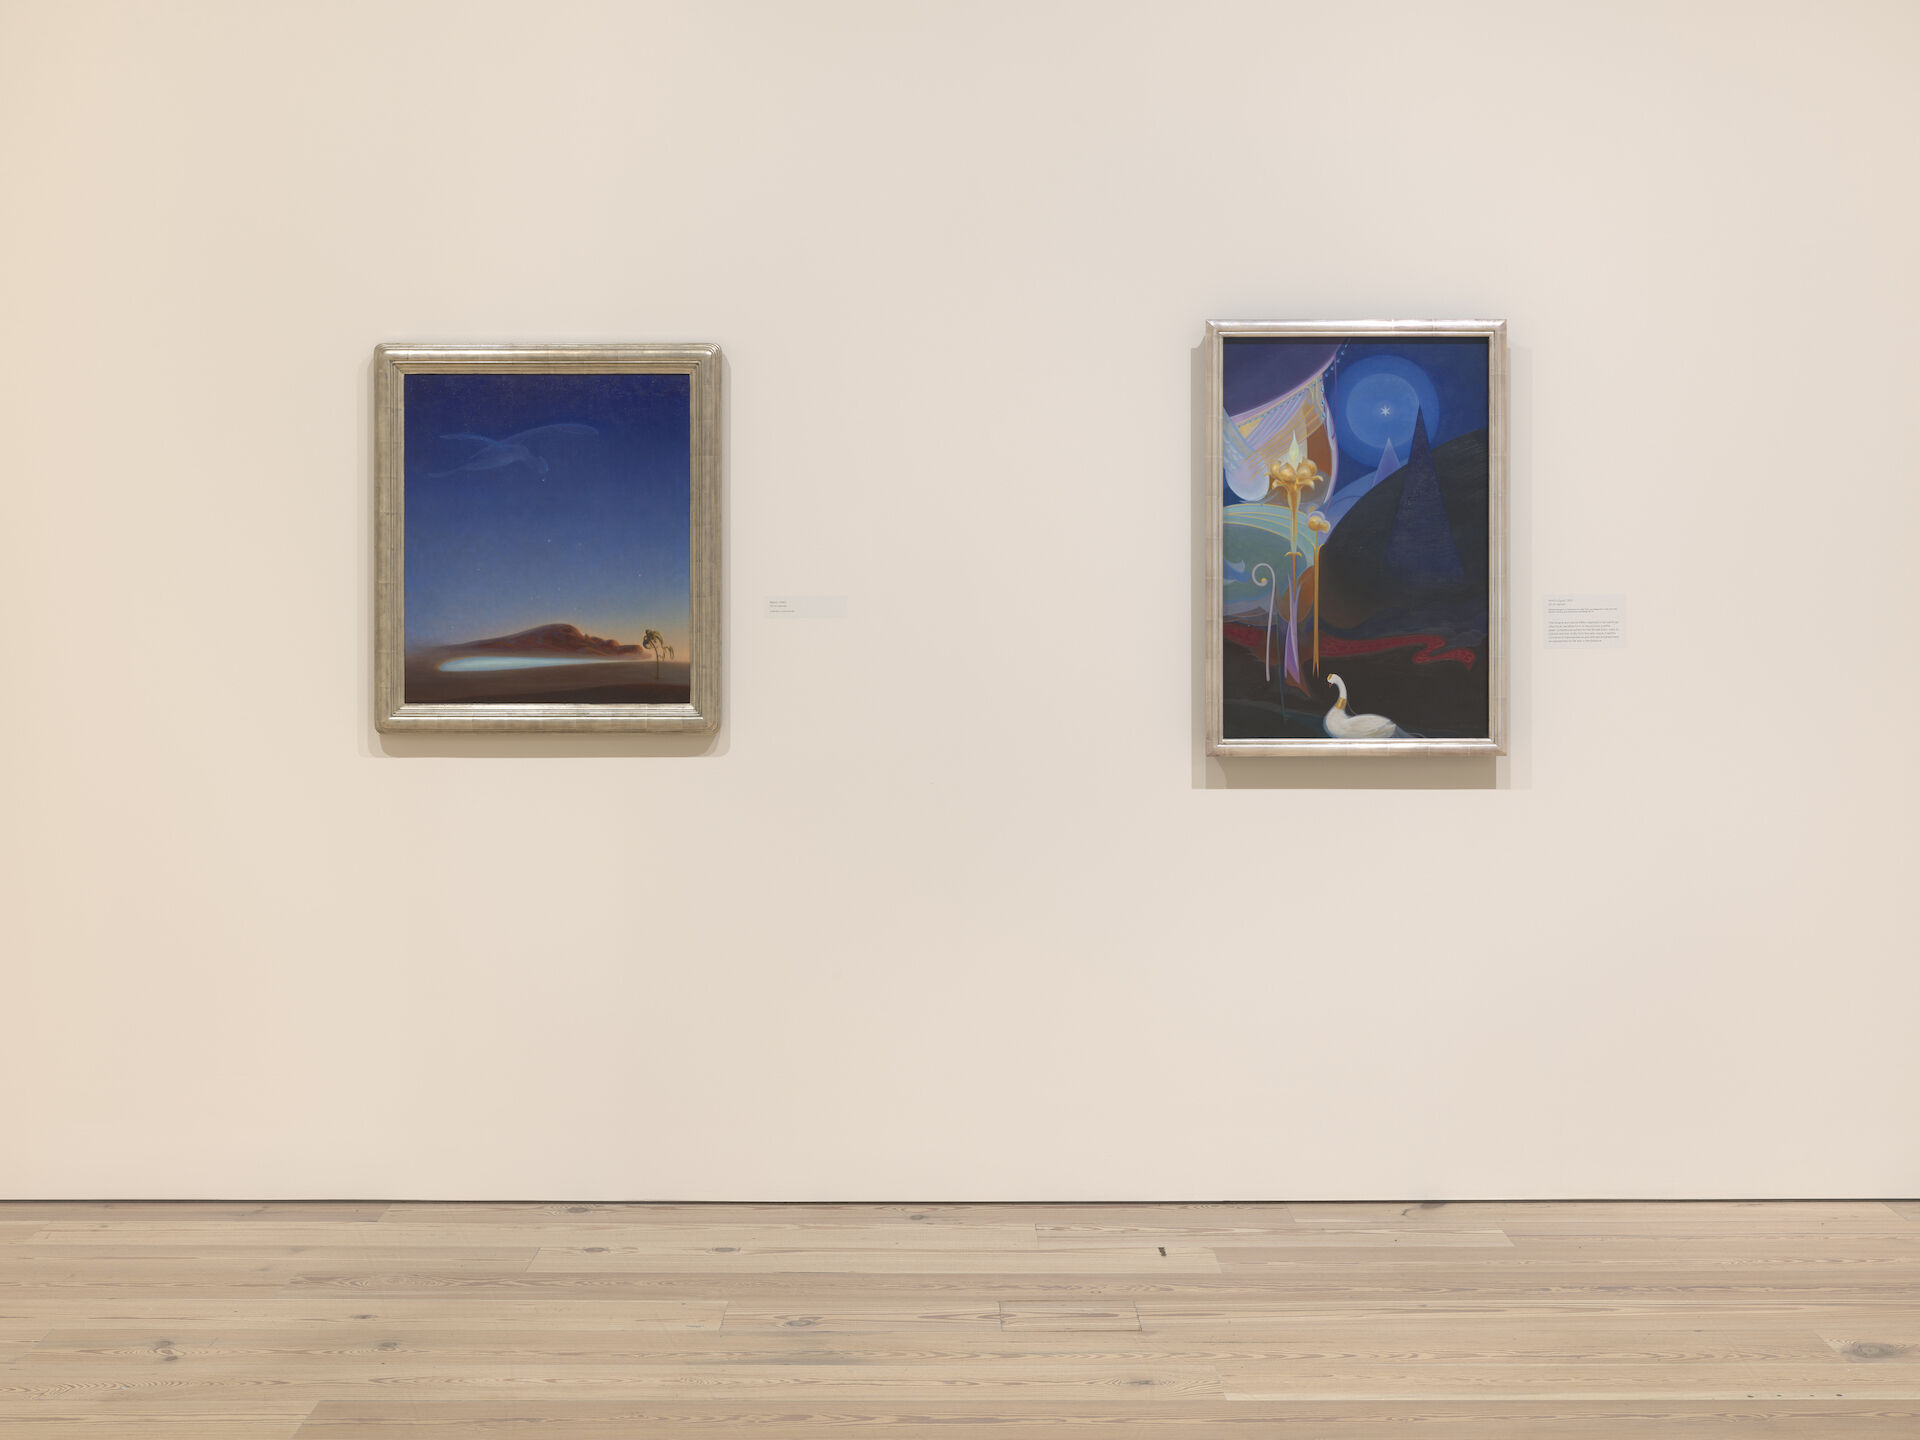 Return, 1940; and Ahmi in Egypt, 1931 by Agnes Pelton appear on a white wall at the Whitney Museum of American Art.